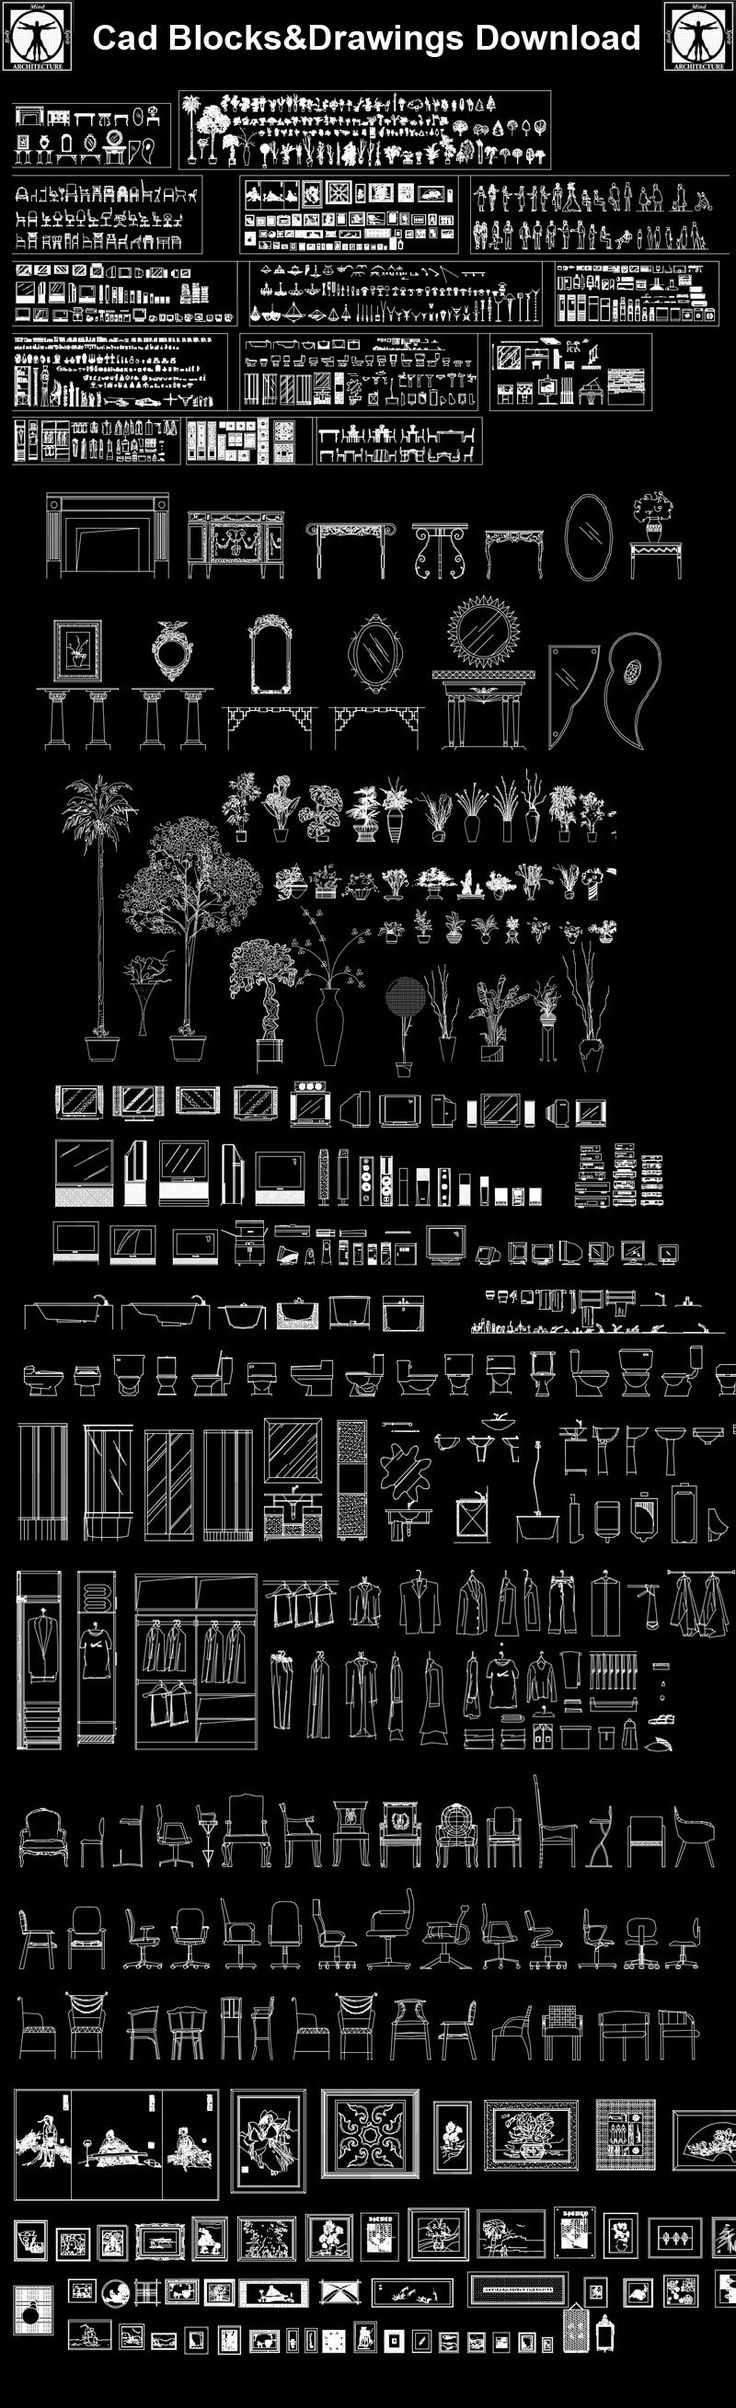 25 best ideas about cad library on pinterest cad symbol for Interior design cad free